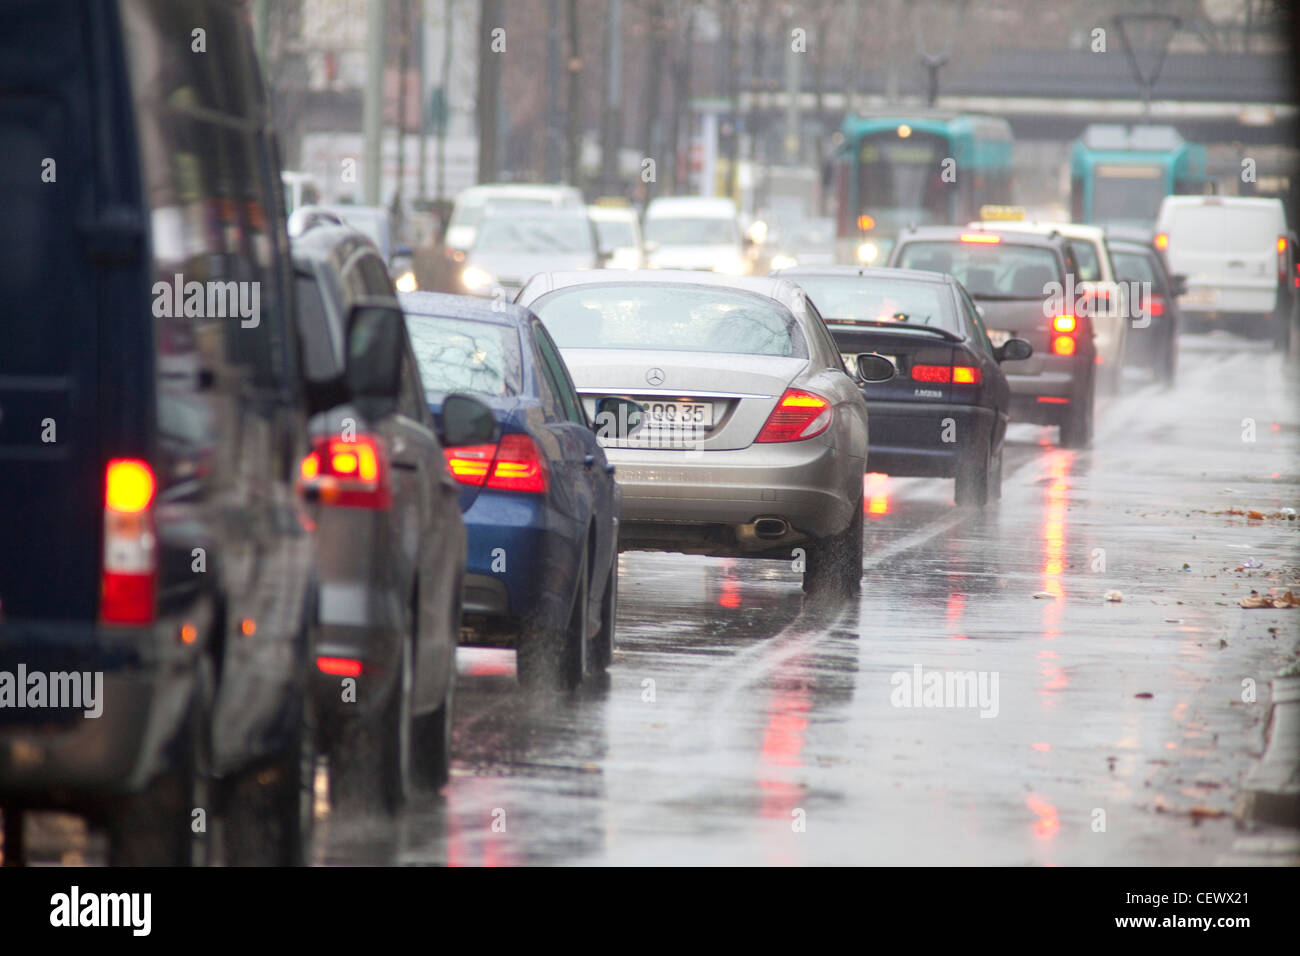 Frankfurt , Germany - traffic coming into Frankfurt in the morning rush on a wet and rainy day. - Stock Image